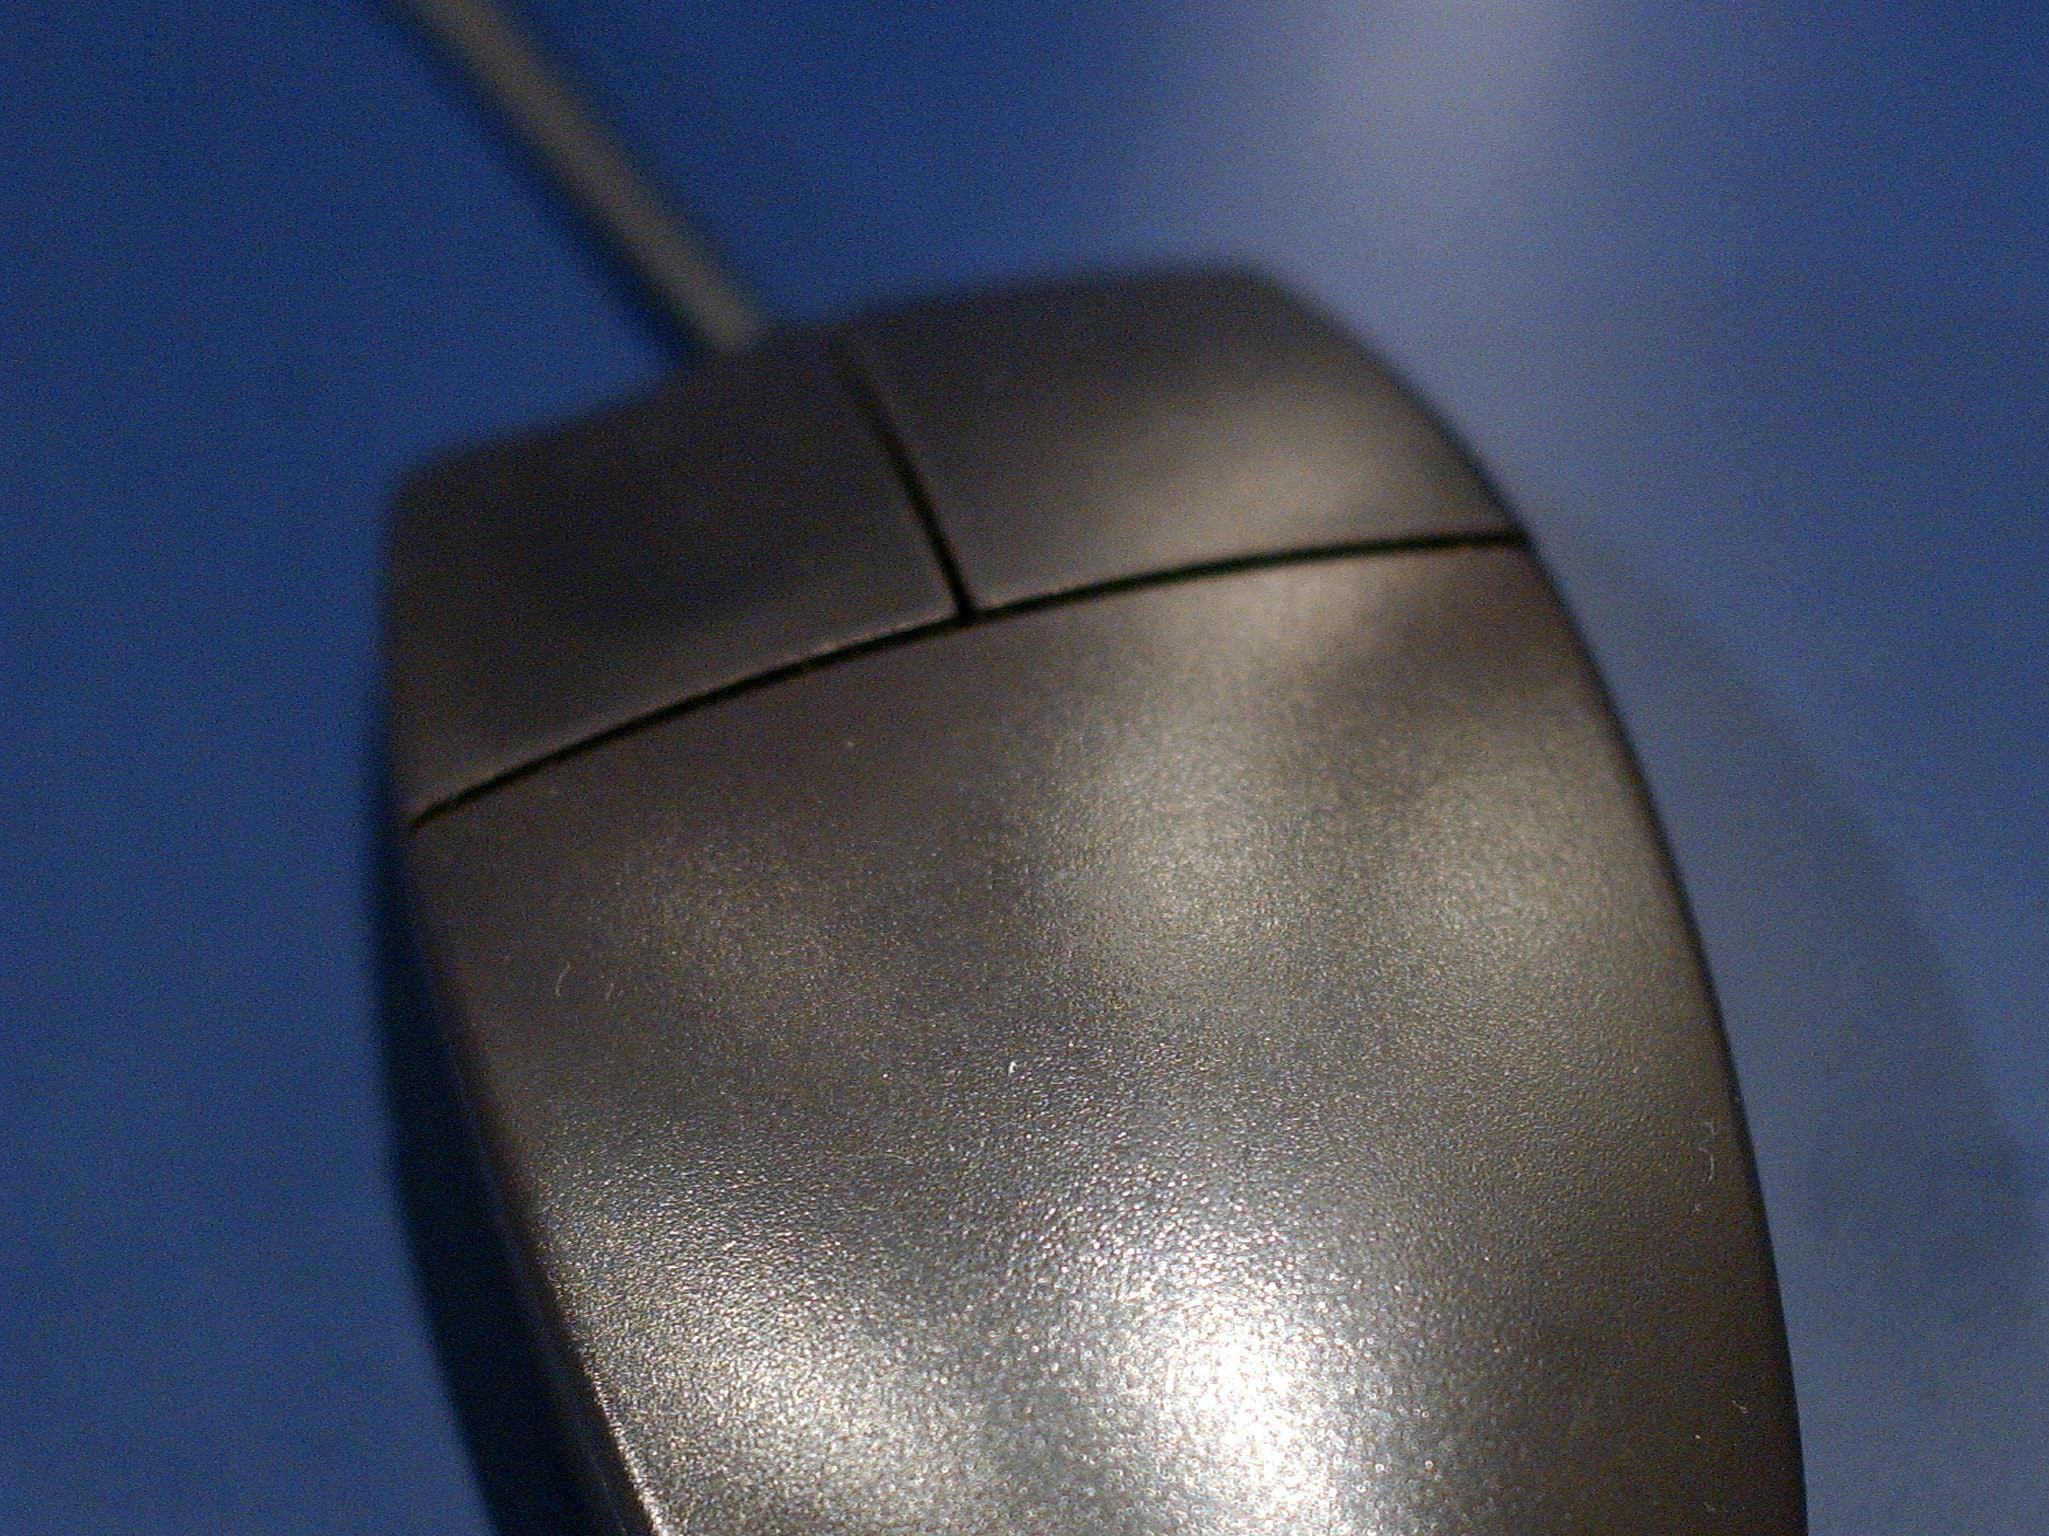 35 Years of the Computer Mouse: A World-Changing Invention, Now on Its Last Leg